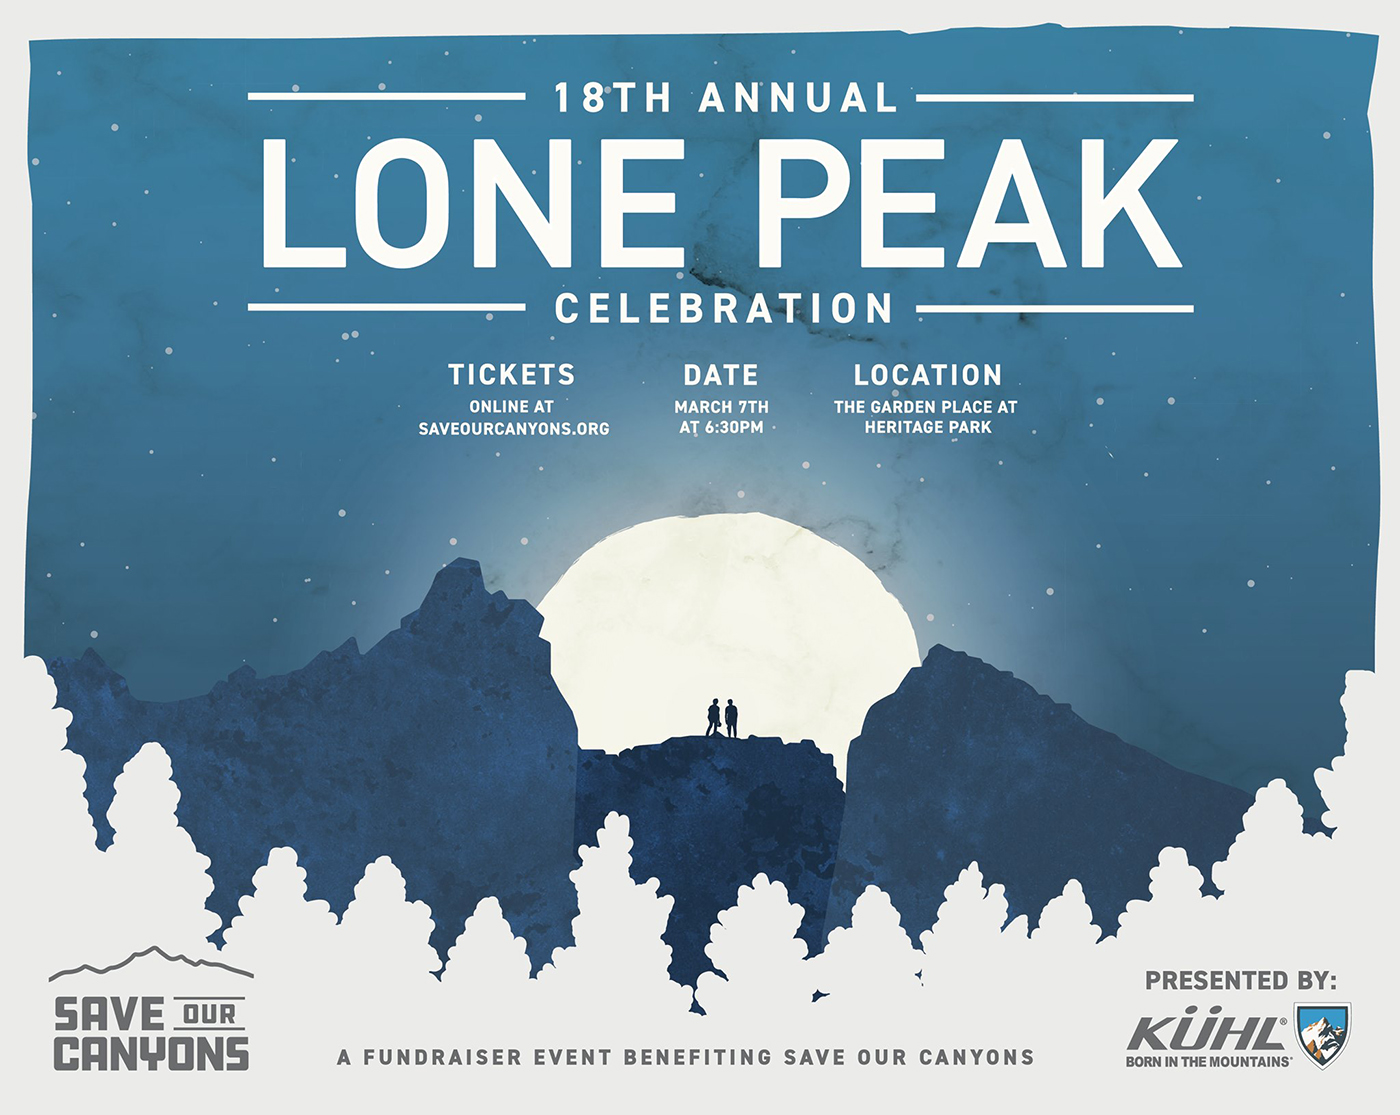 In 1978, wilderness in Utah was realized, and so was the organization's annual fund-raising benefit: the Save Our Canyons Lone Peak Celebration.